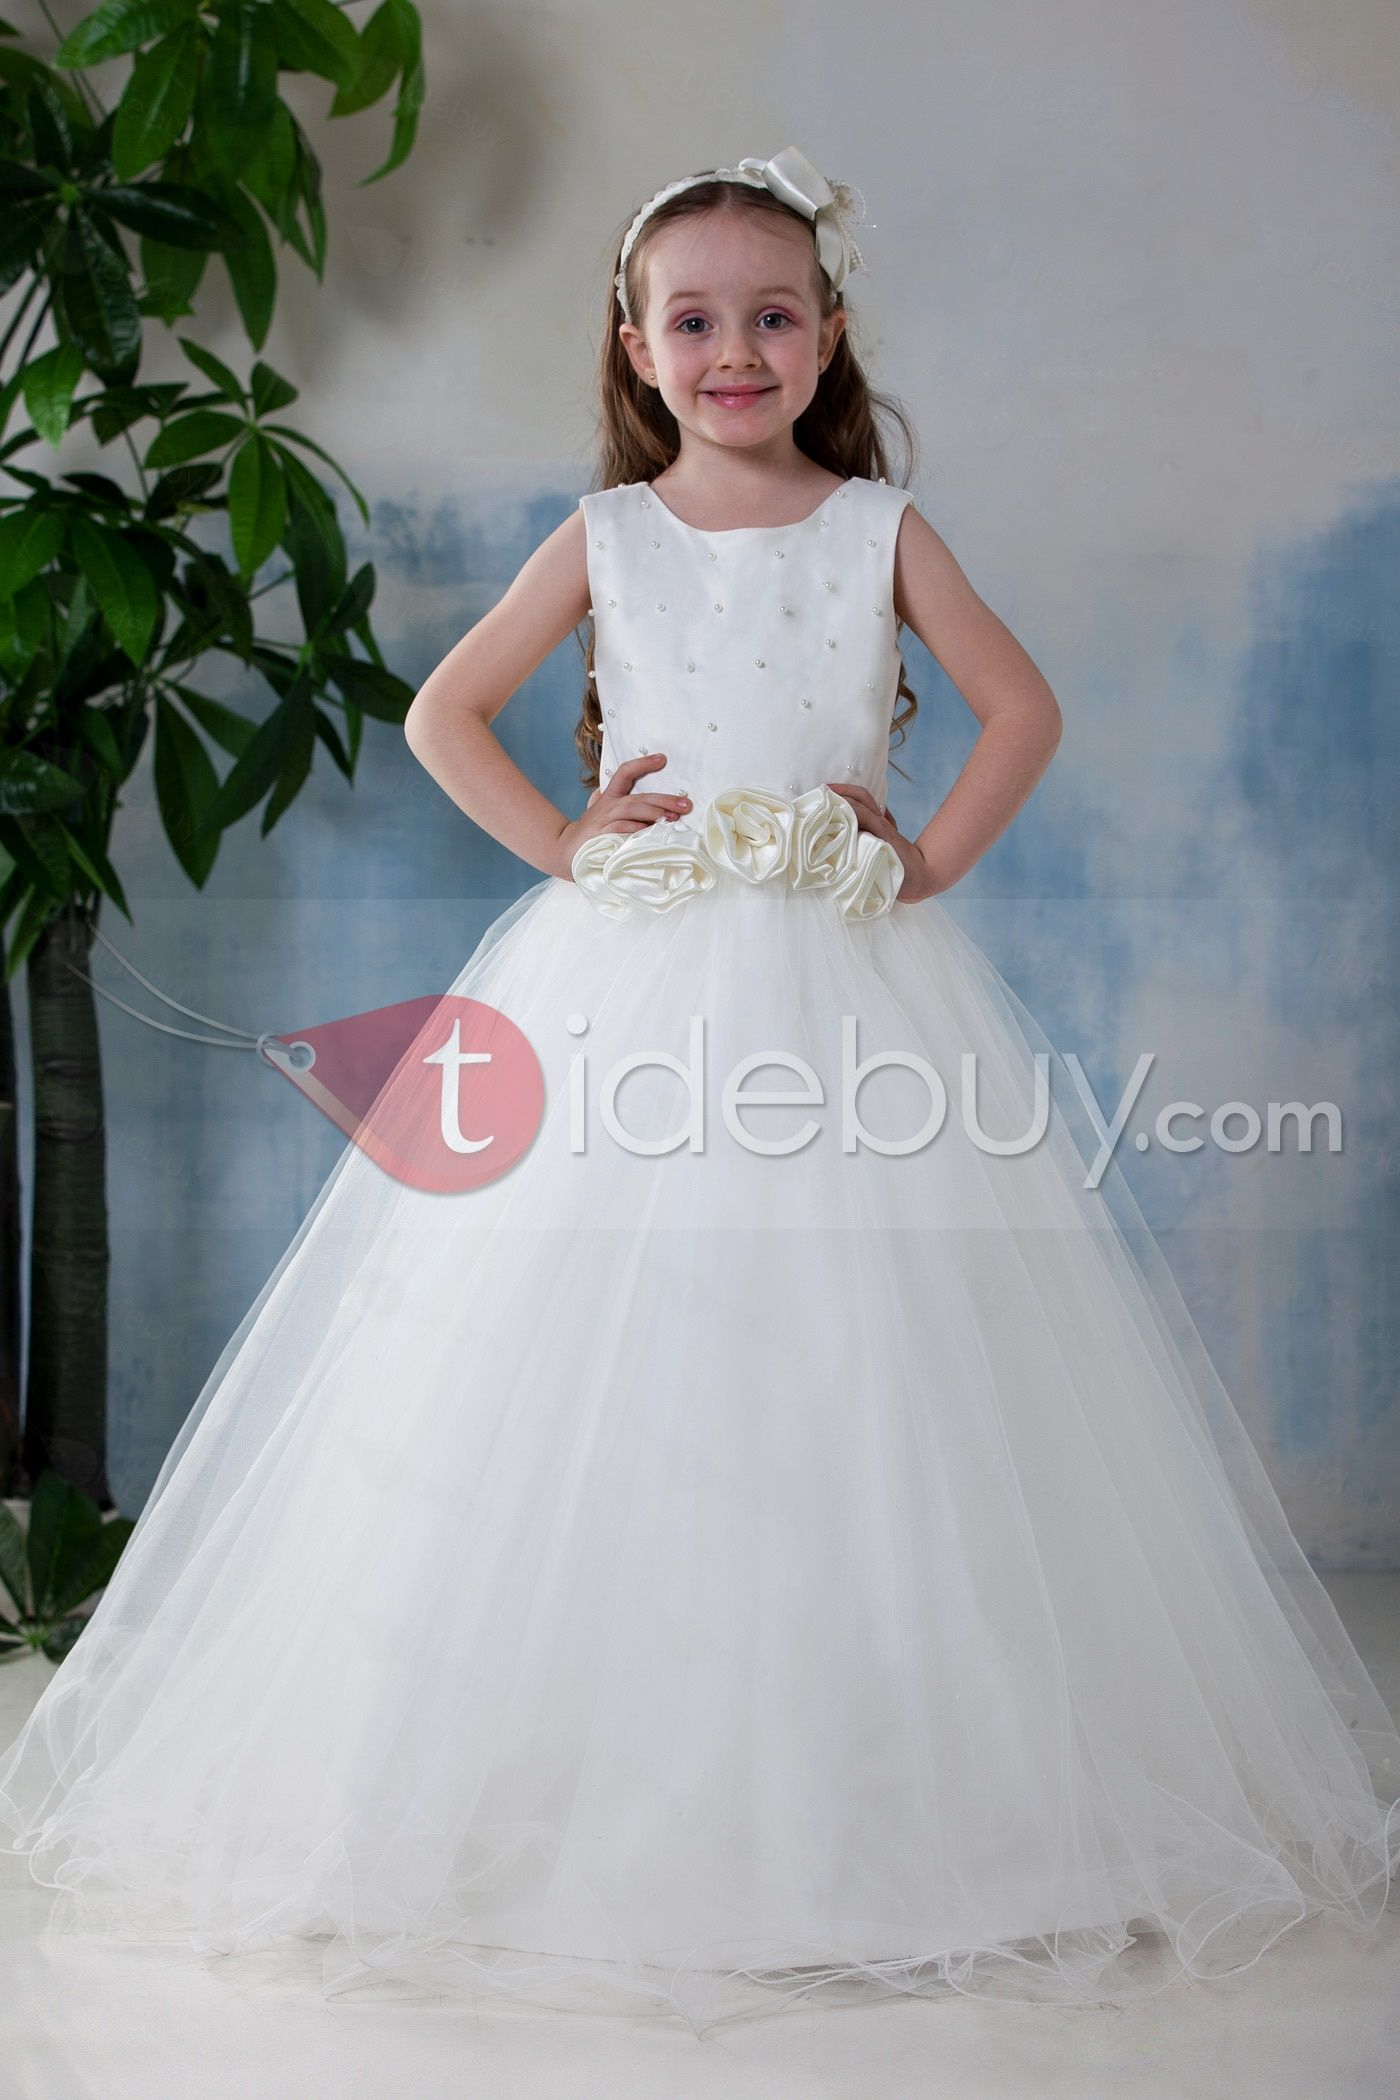 Girls wedding dress  Simple Style ALine Scoop Flower Girl Dress  Flower girl dresses